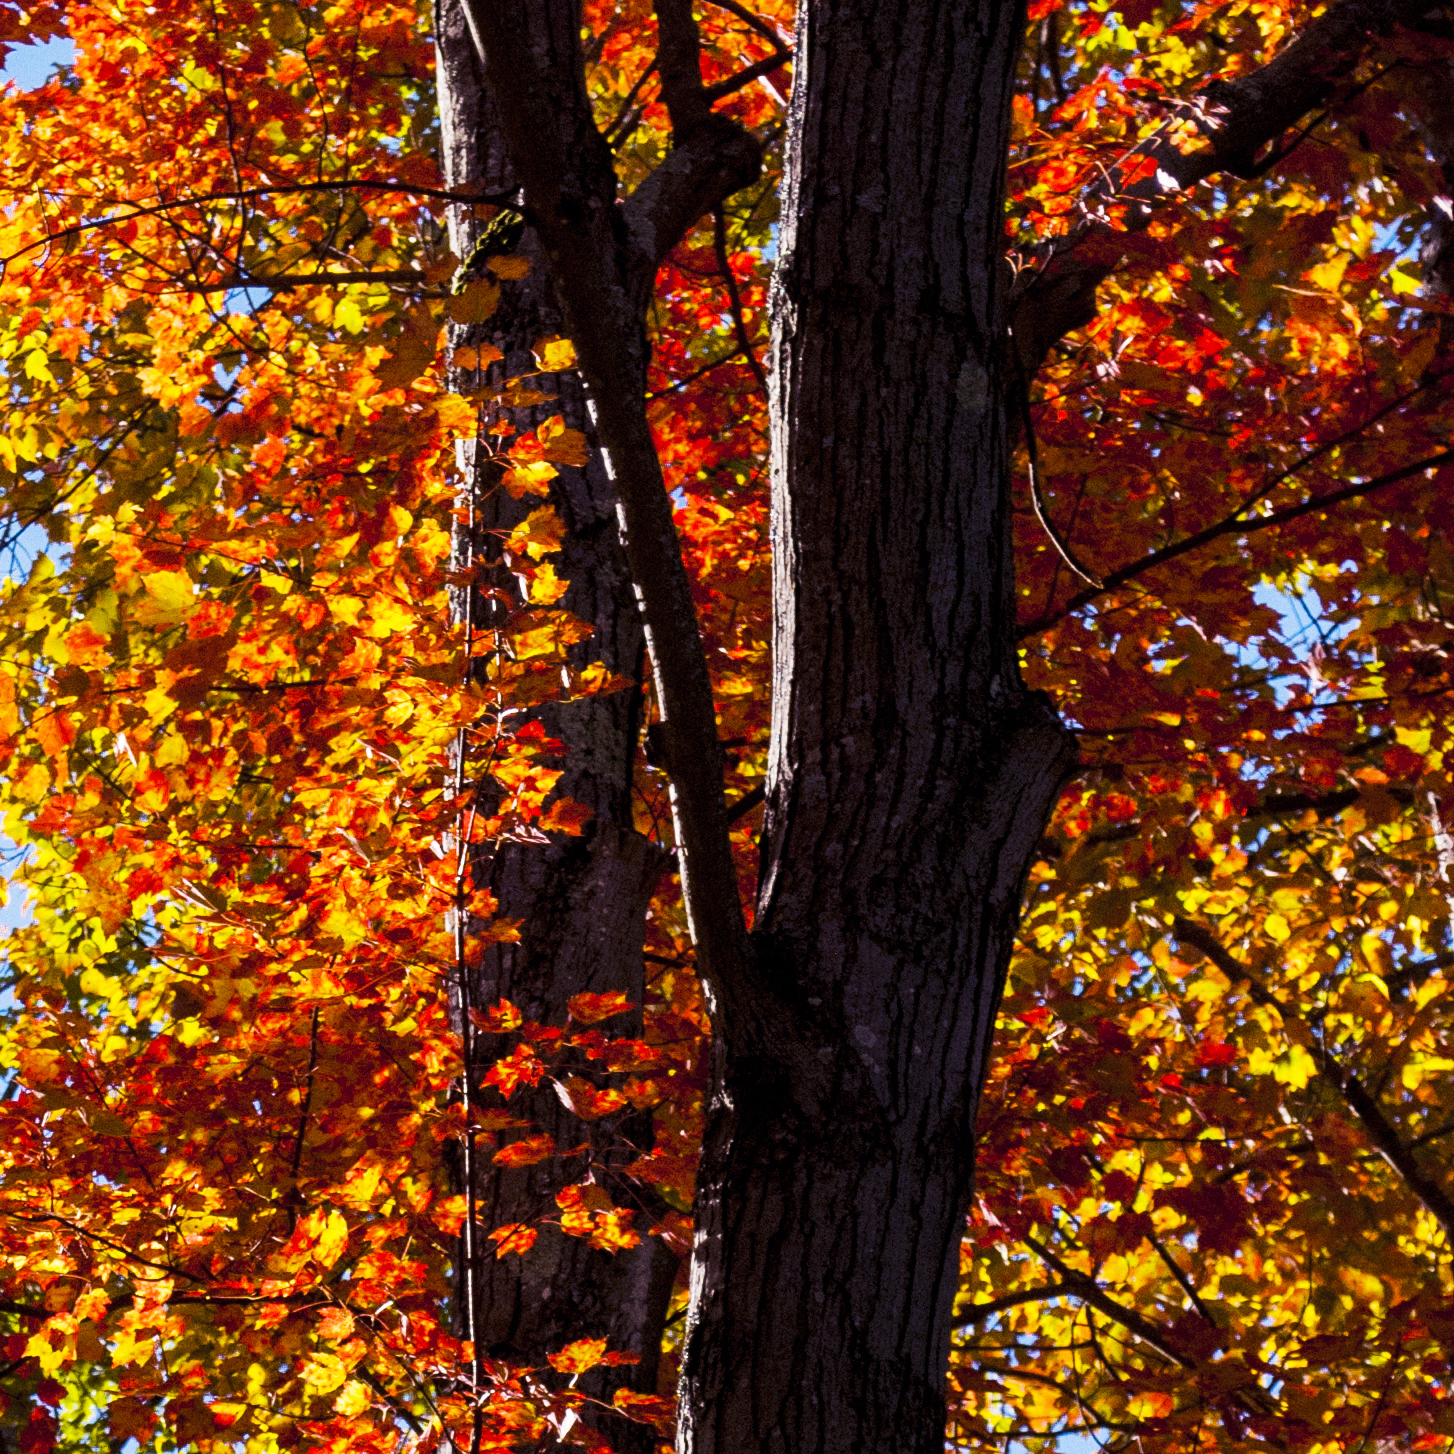 backlit red maple leaves glowing against shadowed bark